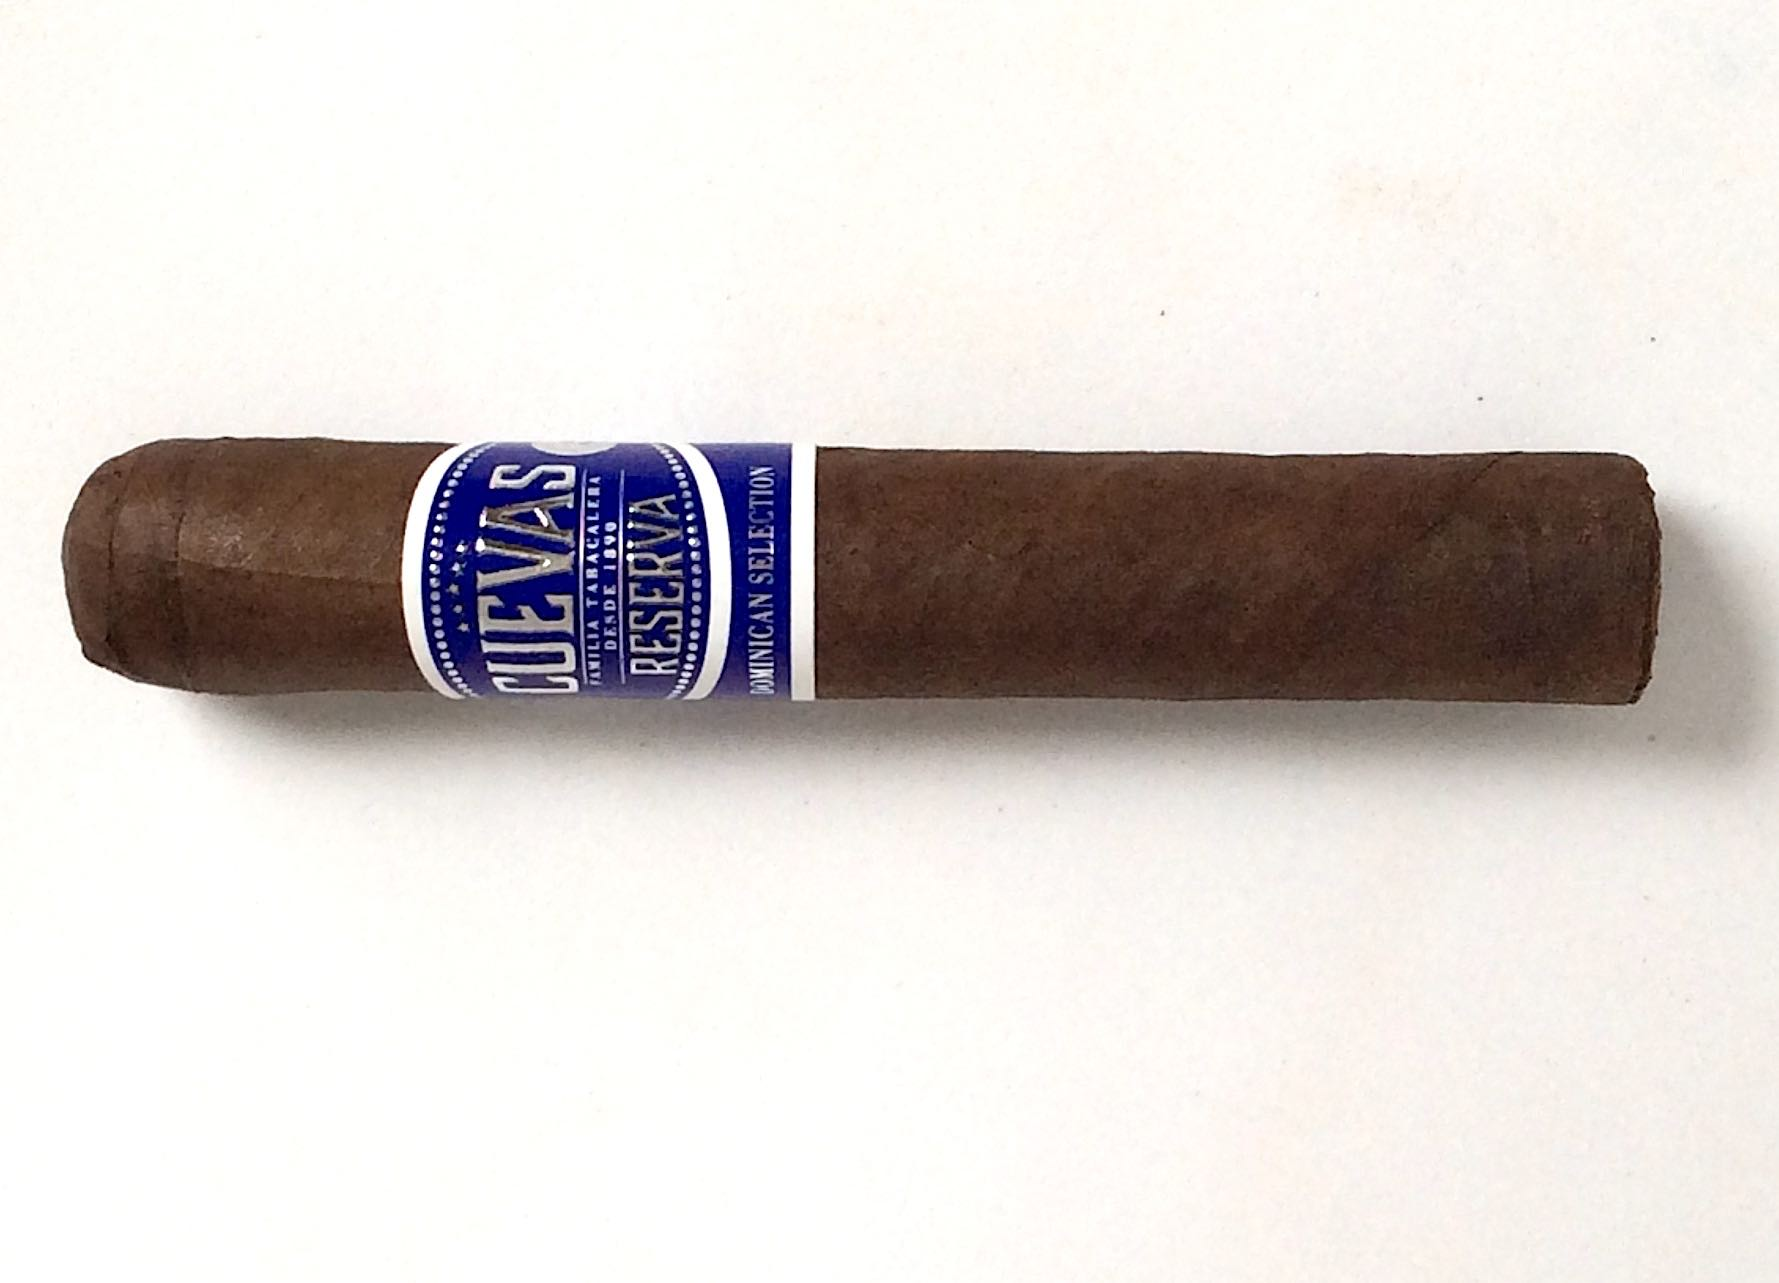 Cigar Review: Cuevas Reserva Maduro Robusto by Casa Cuevas Cigars